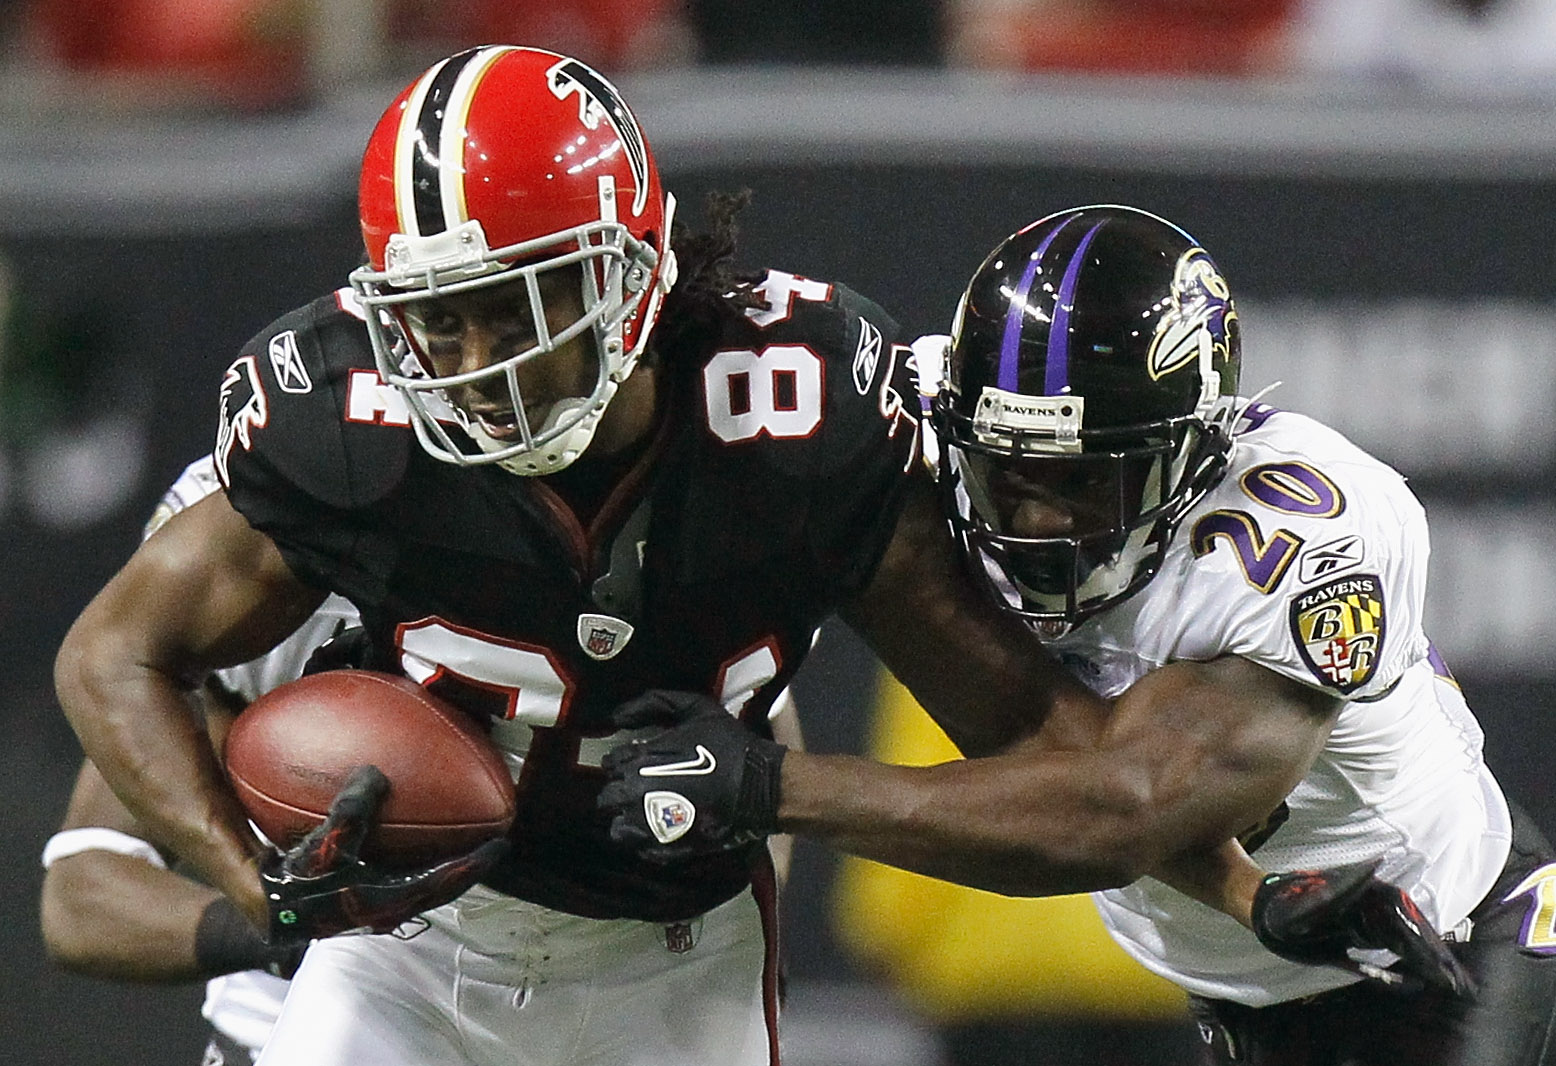 ATLANTA - NOVEMBER 11:  Roddy White #84 of the Atlanta Falcons pulls in this reception against Ed Reed #20 of the Baltimore Ravens at Georgia Dome on November 11, 2010 in Atlanta, Georgia.  (Photo by Kevin C. Cox/Getty Images)